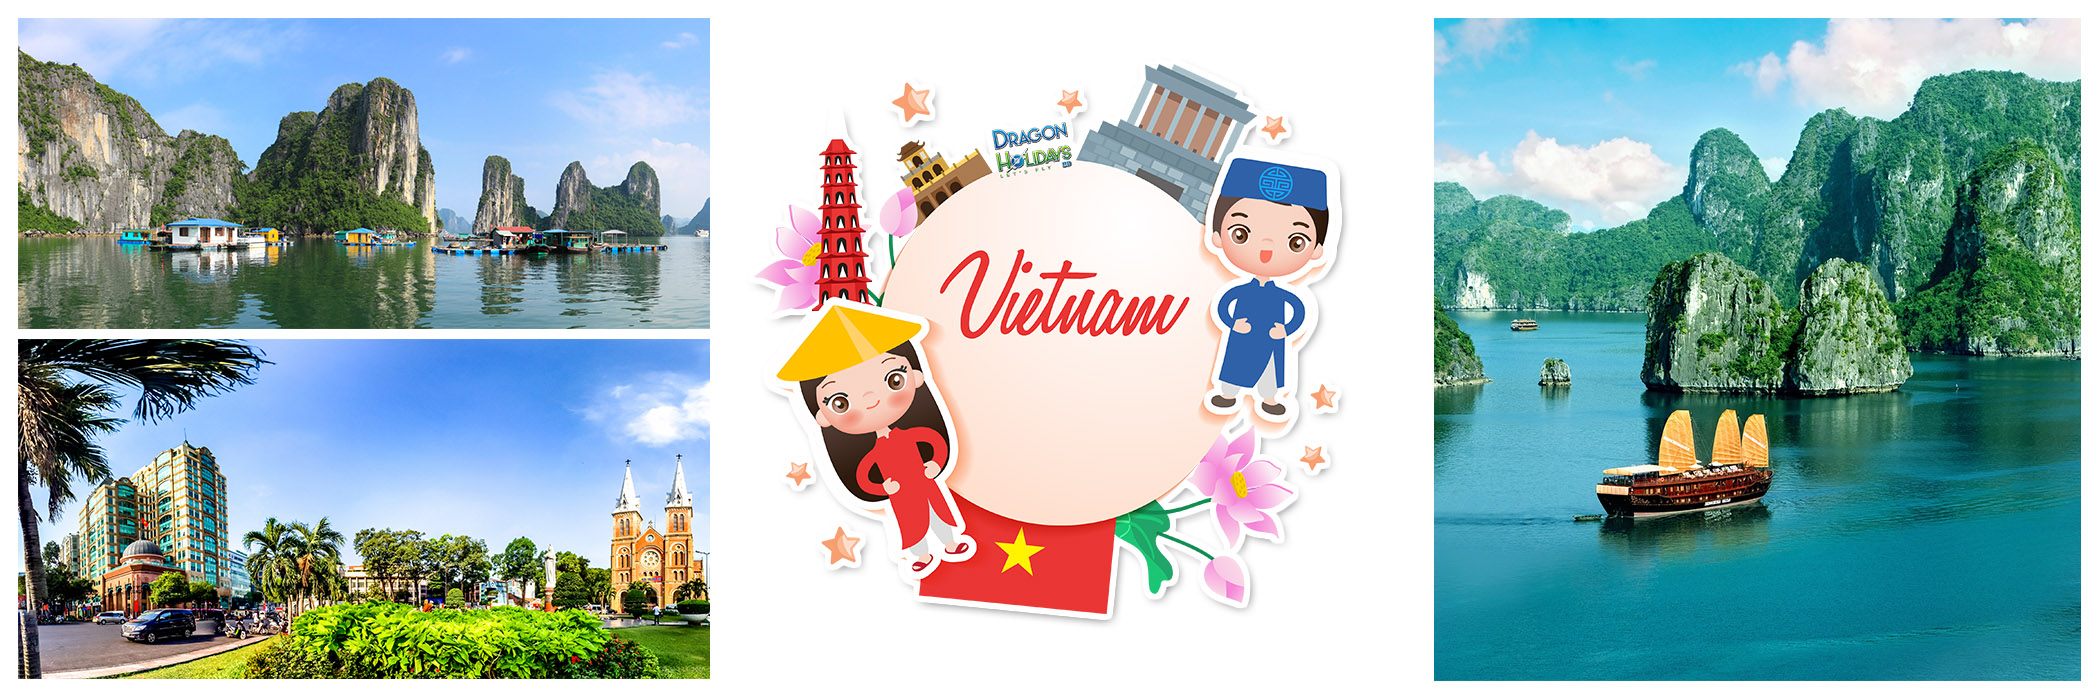 Vietnam Country Cover photo